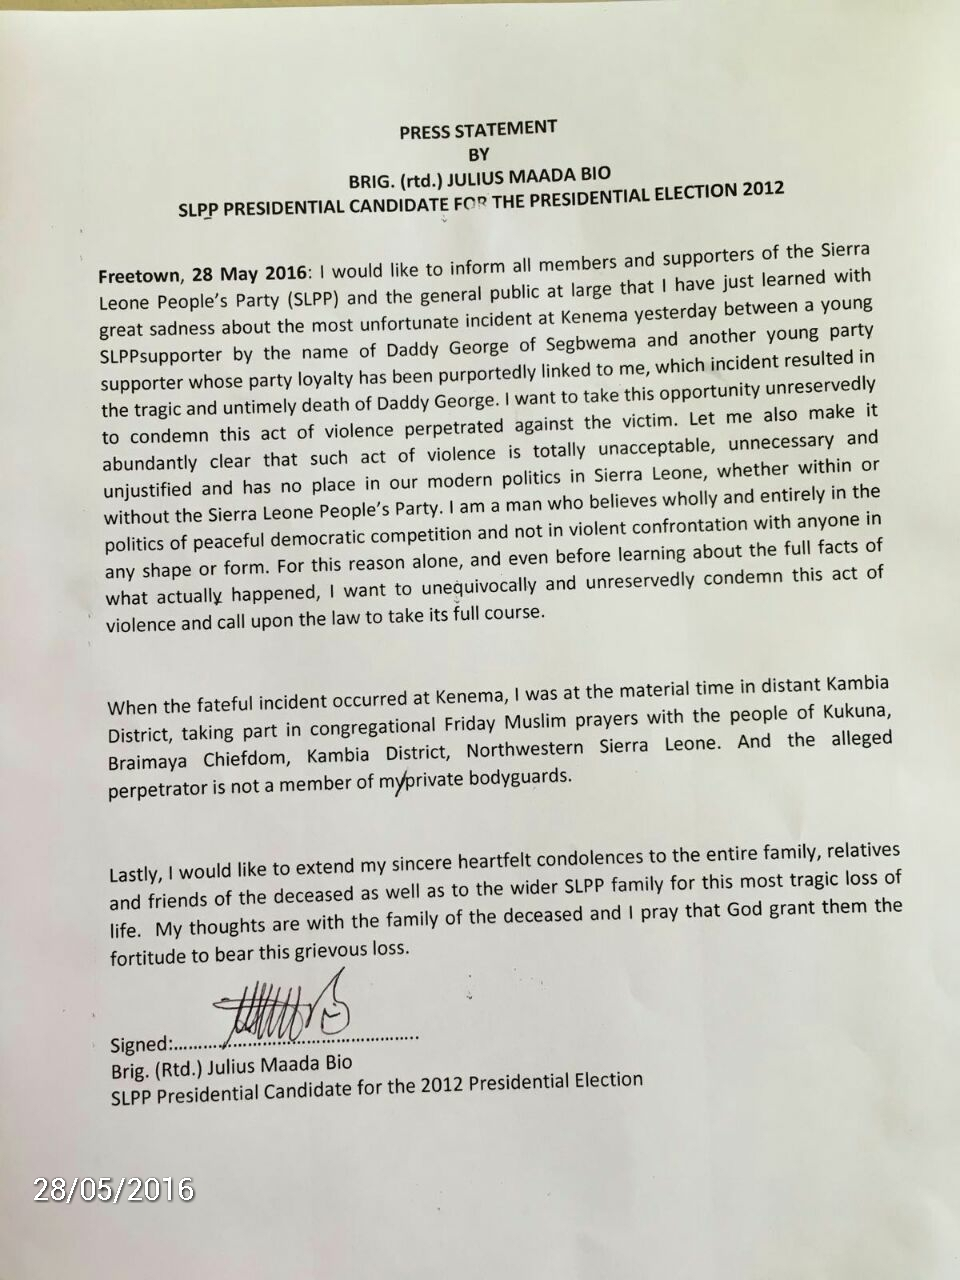 Bio's statement after killing of SLPP supporter - May 2015